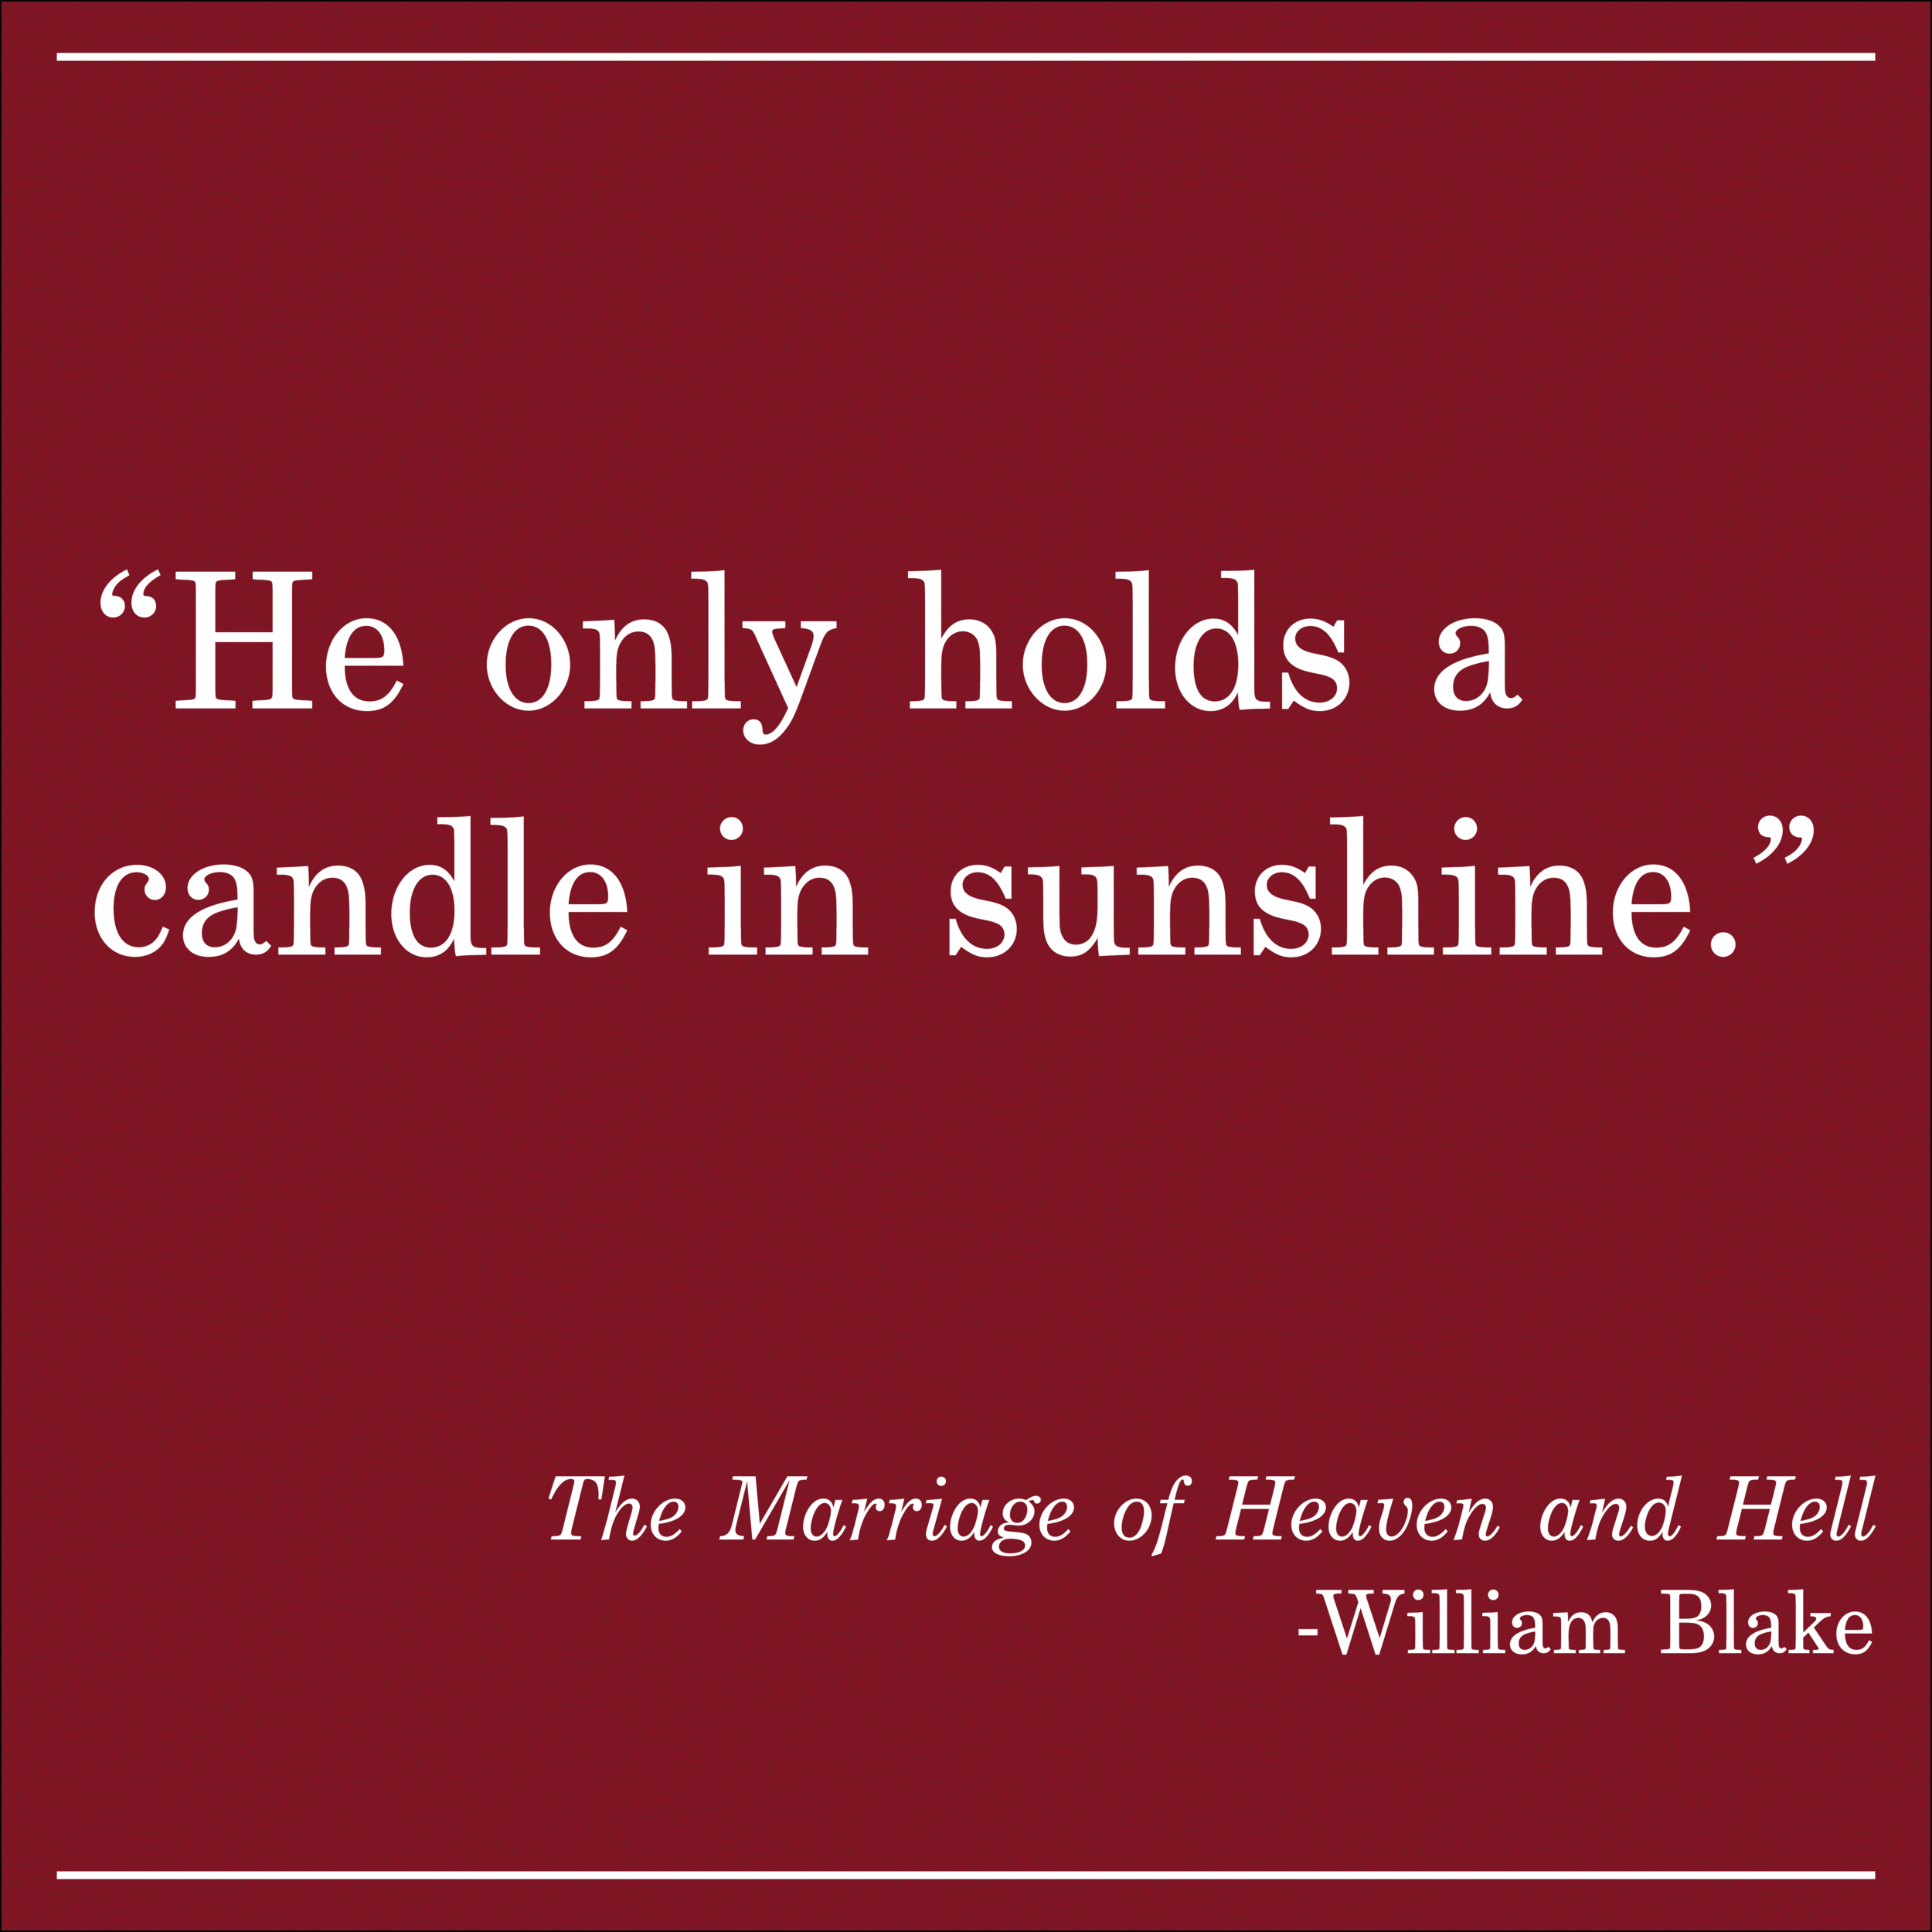 Daily Quote the Marriage of Heaven and Hell by William Blake